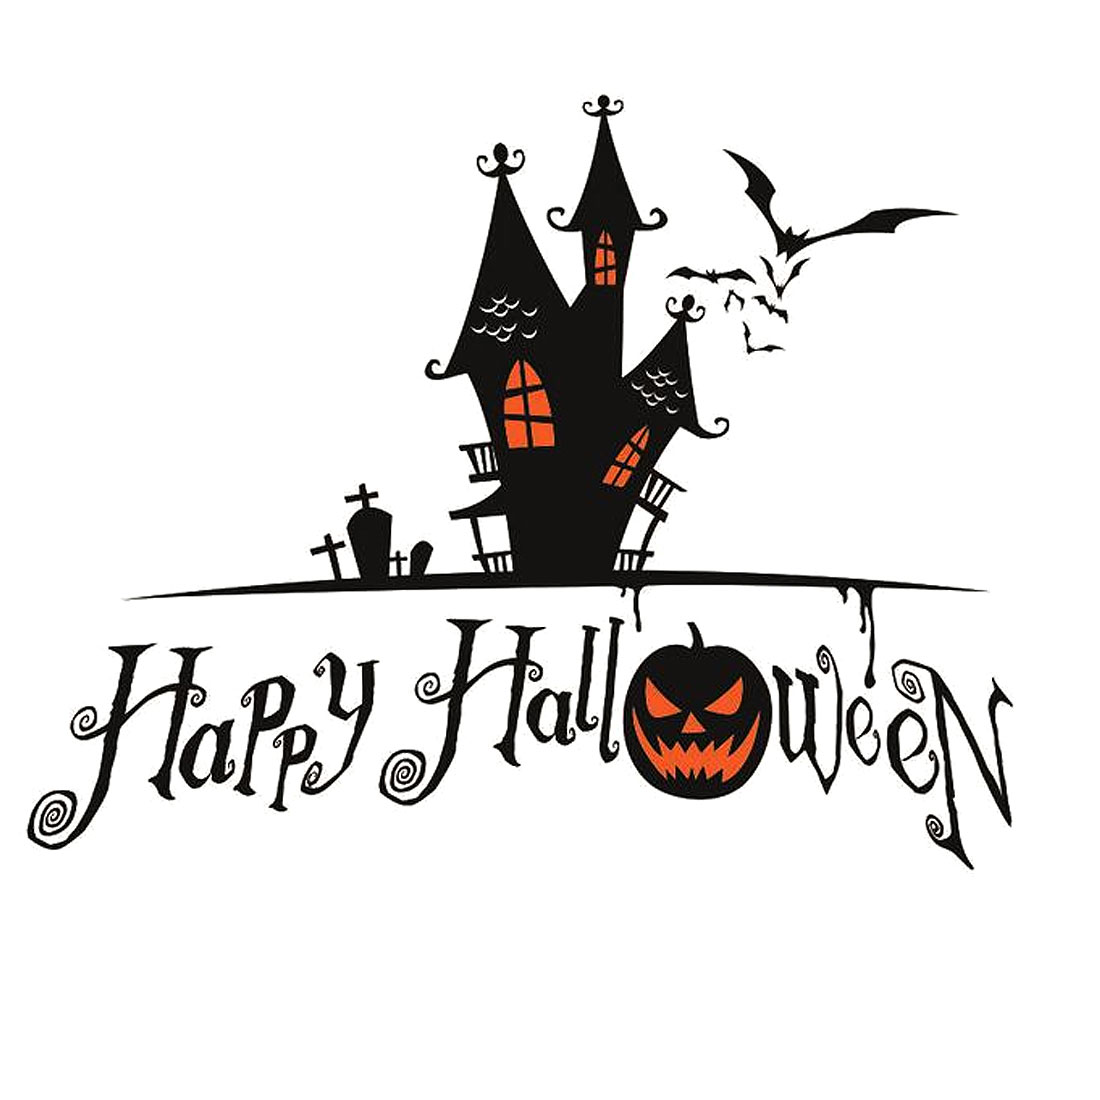 Halloween Decoration Self Adhesive Removable Wall Sticker Tricolor 60 x 44cm